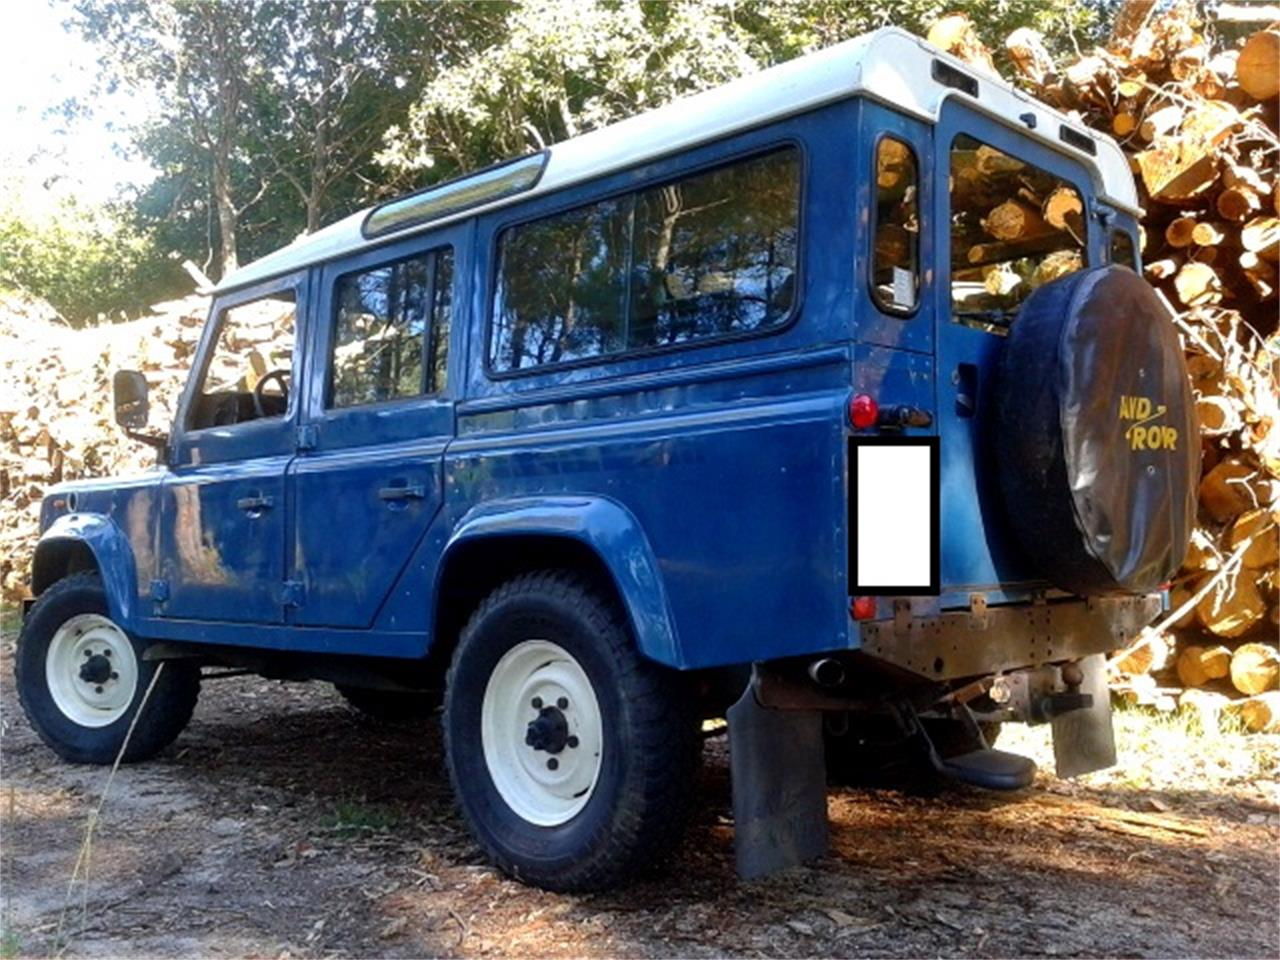 Large Picture of '87 Land Rover Defender located in Florida - $39,000.00 Offered by a Private Seller - FN1X